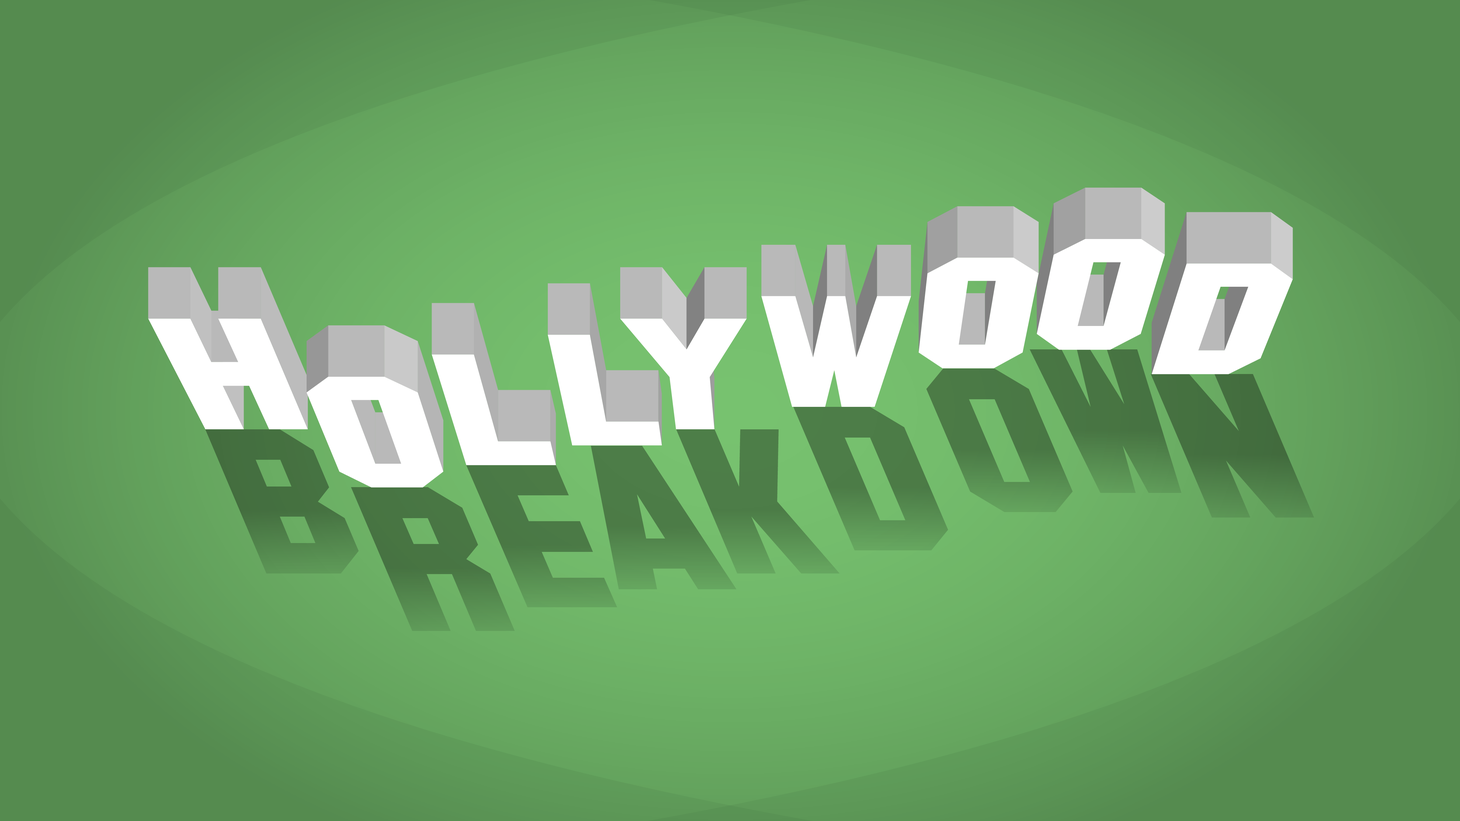 Hollywood has been chasing Chinese money for years, and to do so, studios have been self-censoring themselves so that their movies can be played in the Communist country.